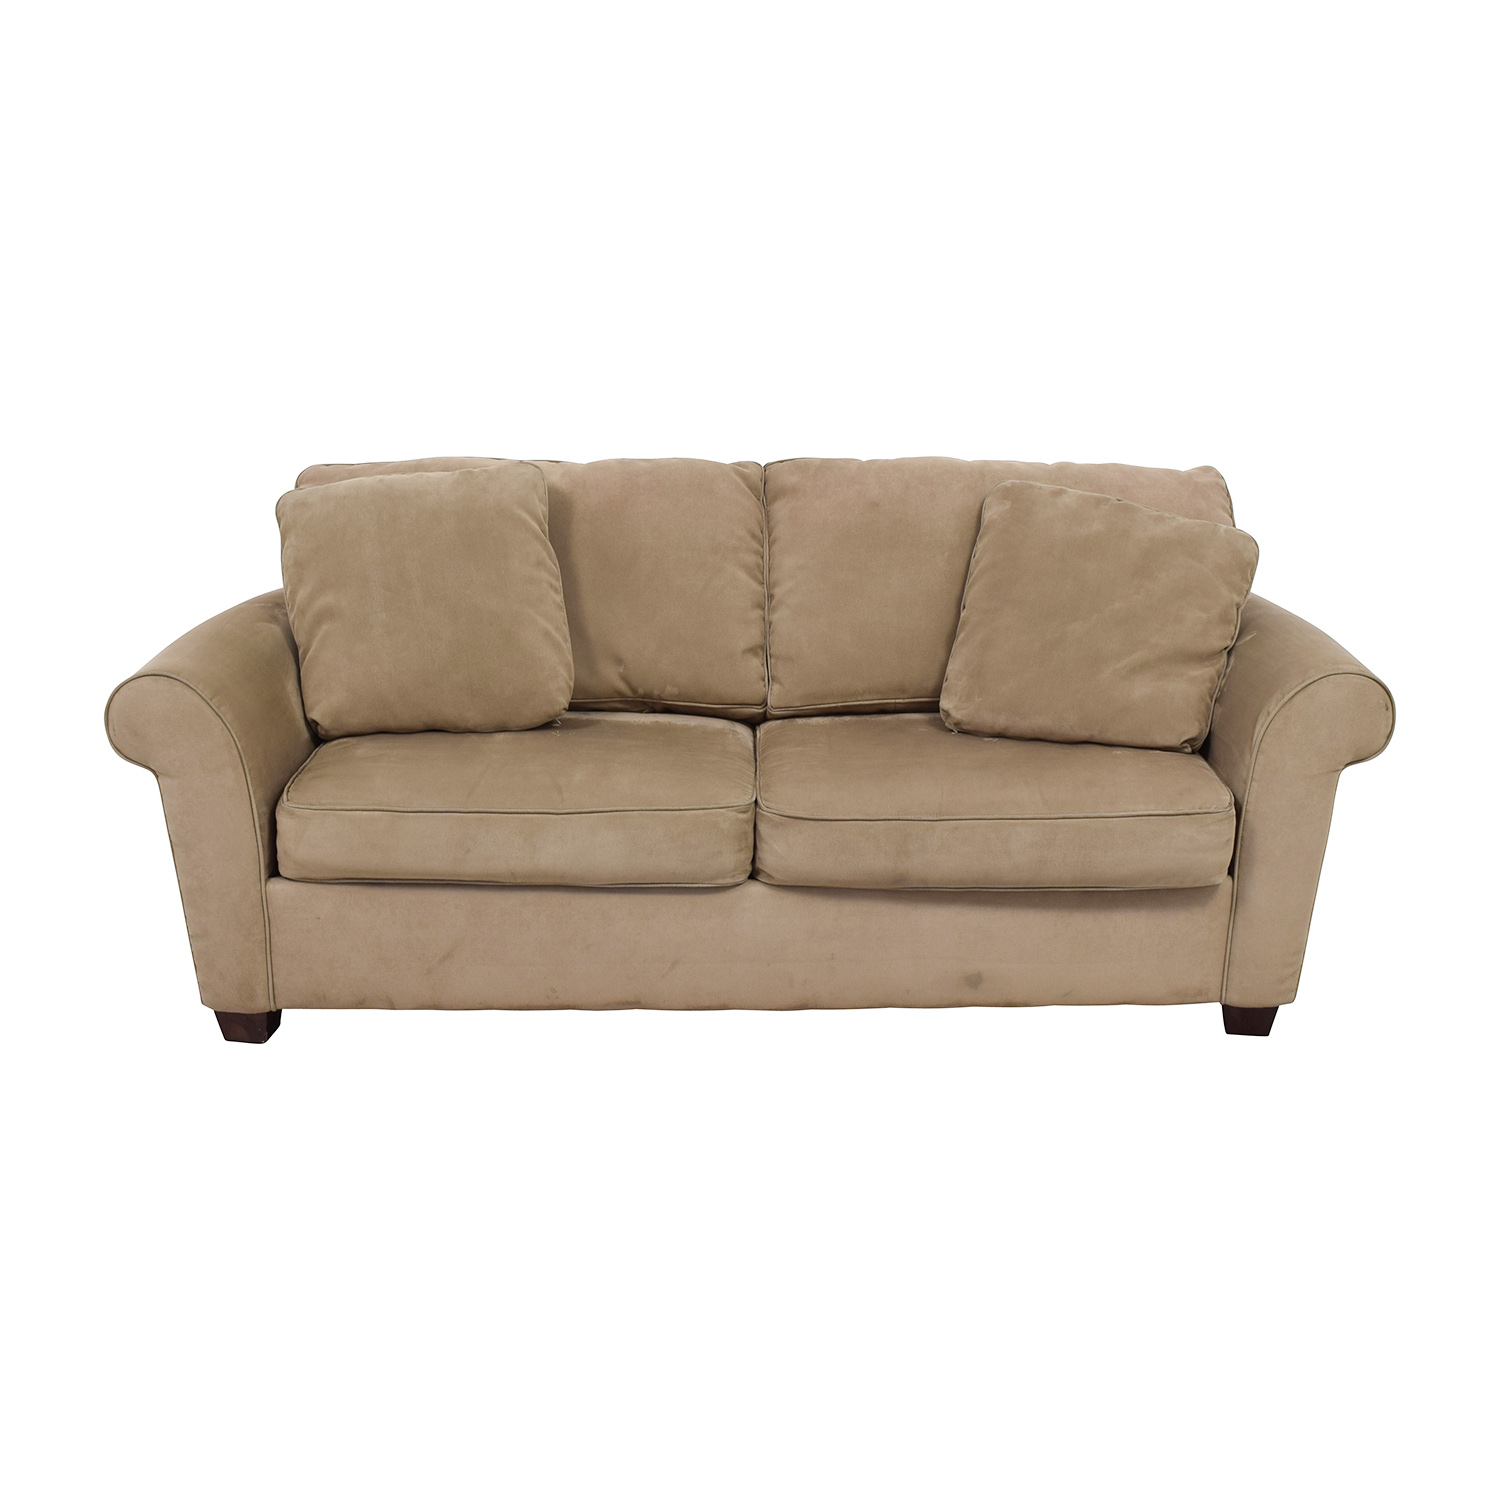 Bauhaus Microfiber Tan Oversized Couch For